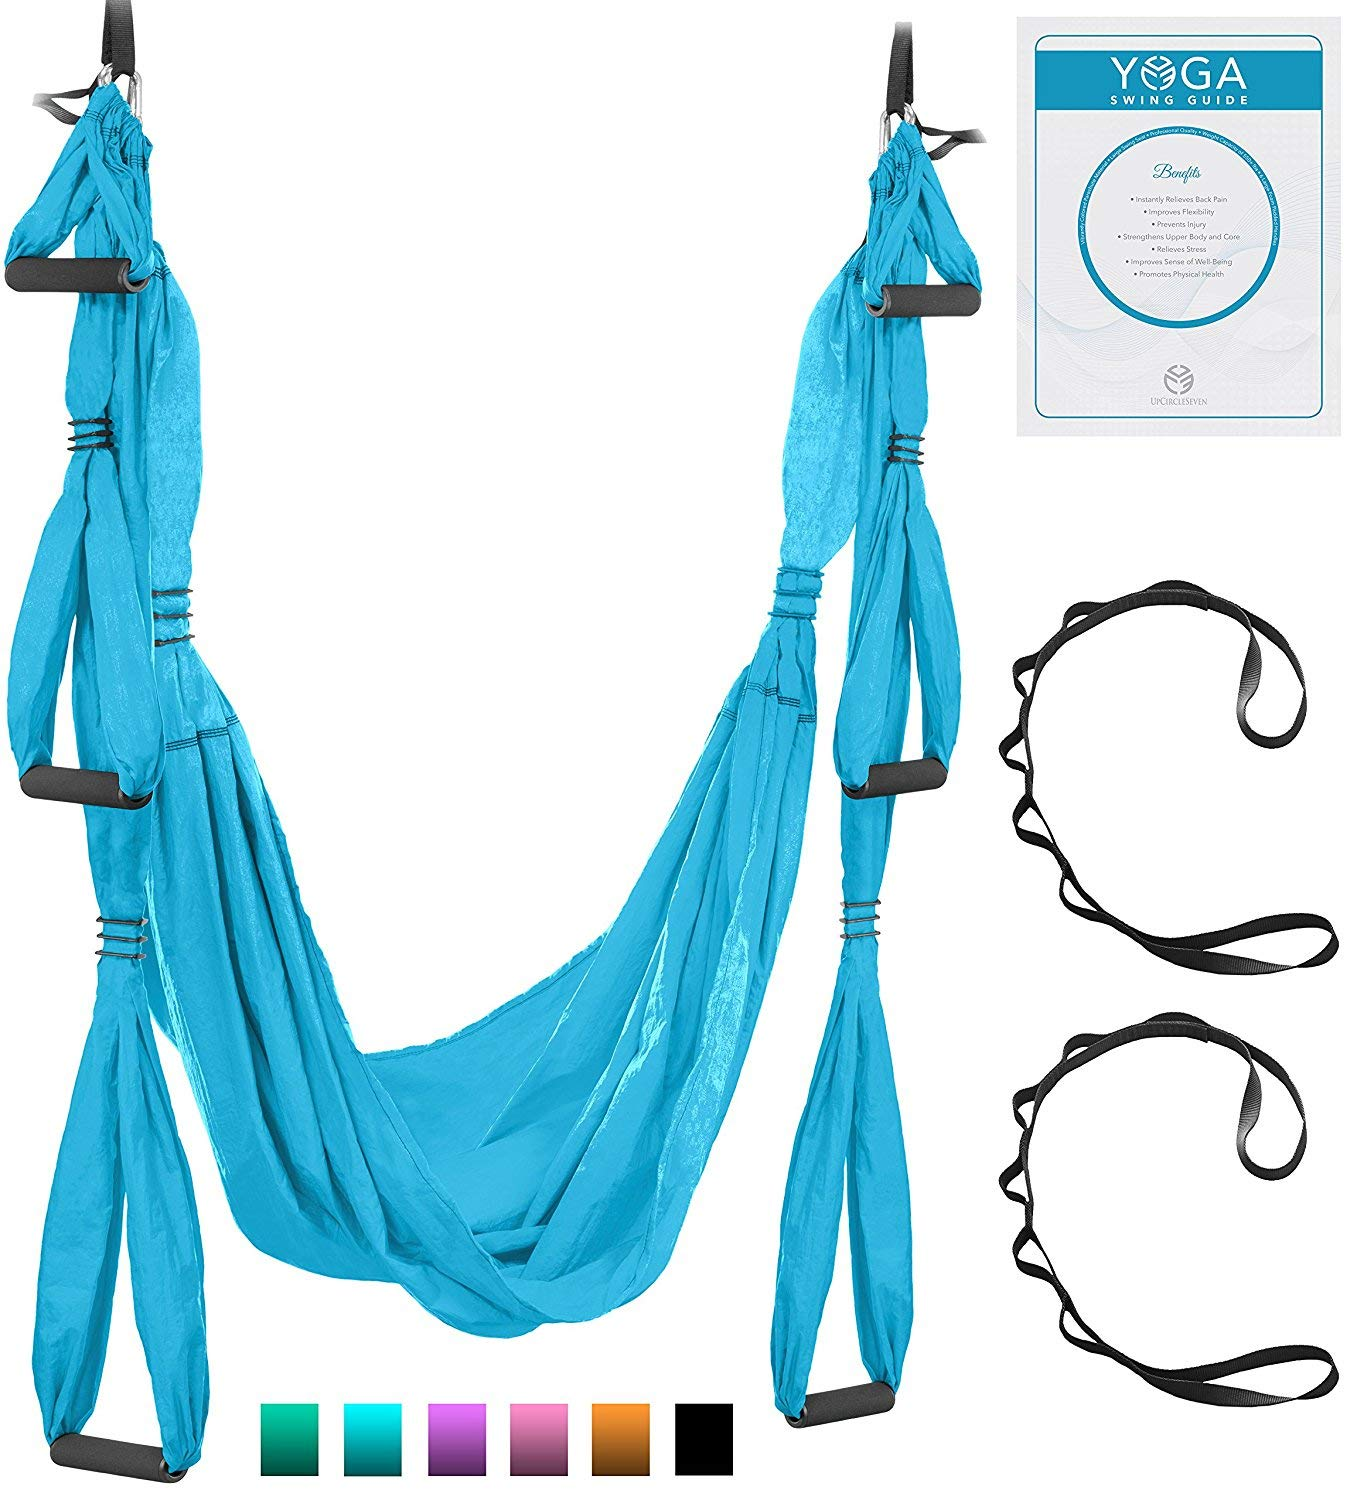 Sealed Products Aerial Yoga Swing – Premium Yoga Trapeze Set for Aerial Yoga Hammock Activities – Perfect for Each Sex Swing for Balance Flexibility and Back Pain Relief